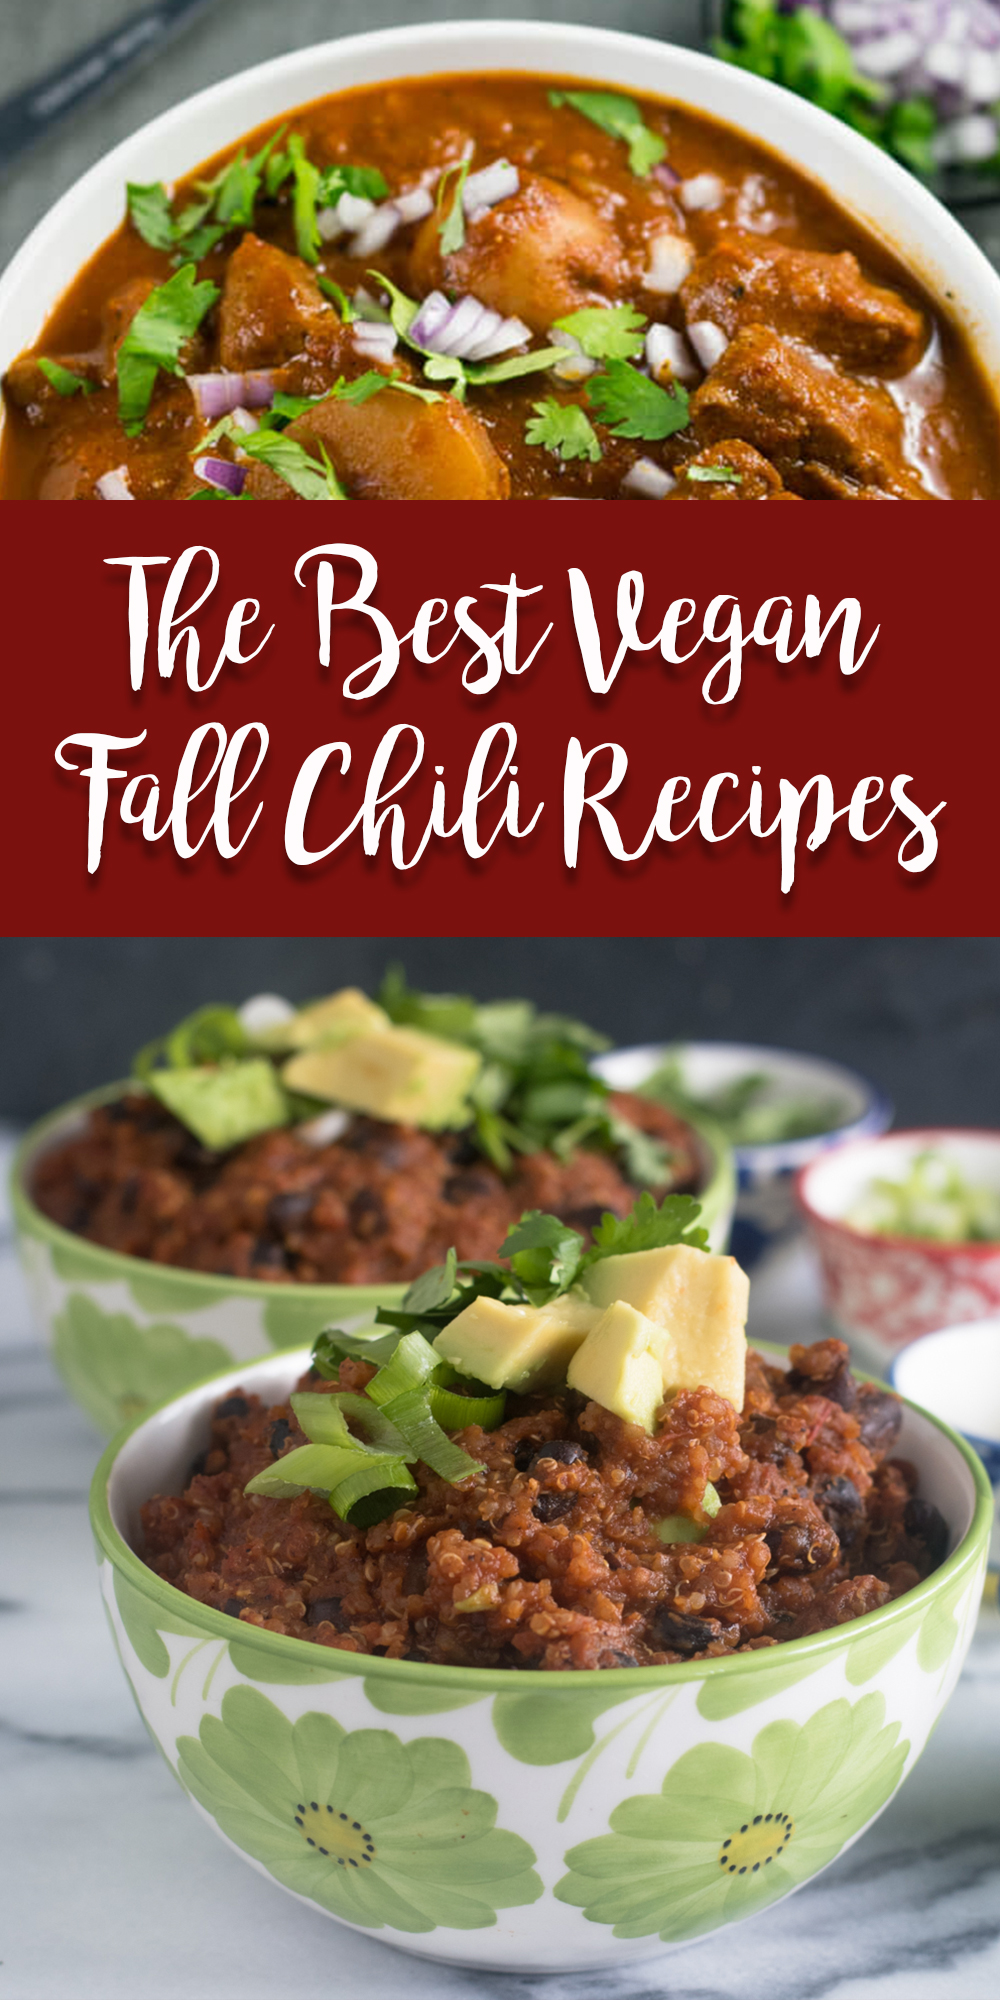 There are just so many great vegan chili recipes for fall! I hope that this list of the best vegan chili recipes for fall has inspired you to try some new vegan chili recipes soon! #fall #chili #vegan #veganrecipes #fallrecipes #easyrecipes #recipes #vegetarian